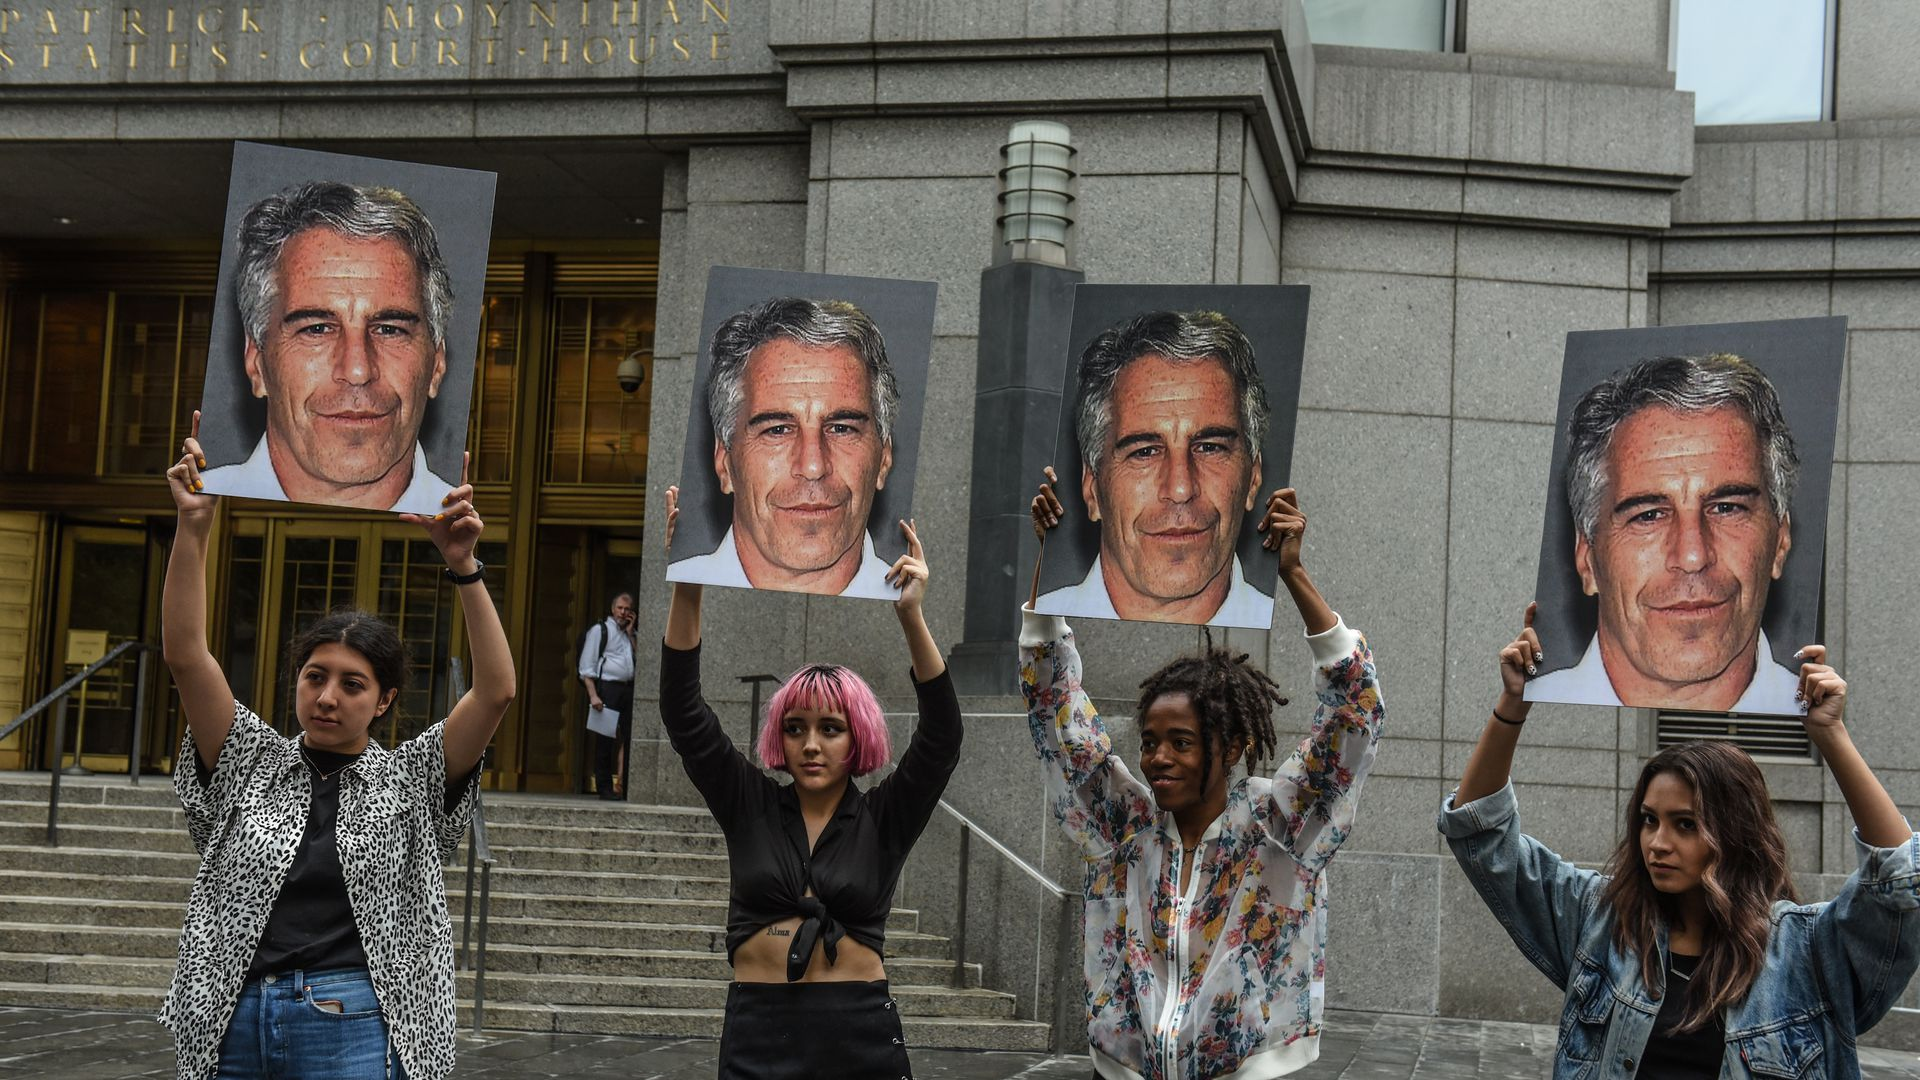 In this image, four people hold up signs of Jeffrey Epstein's face.